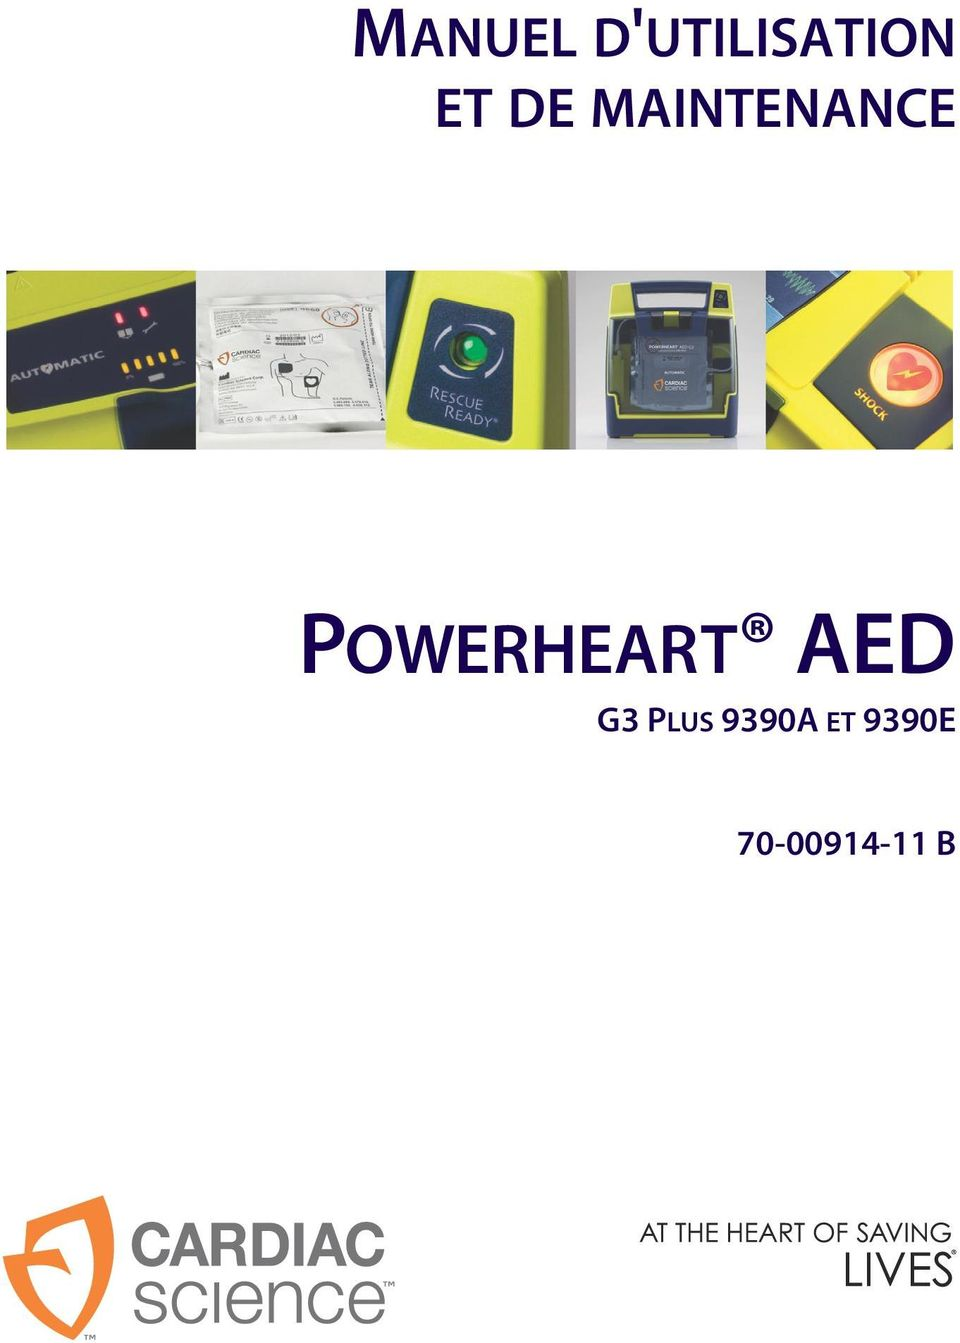 POWERHEART AED G3 PLUS